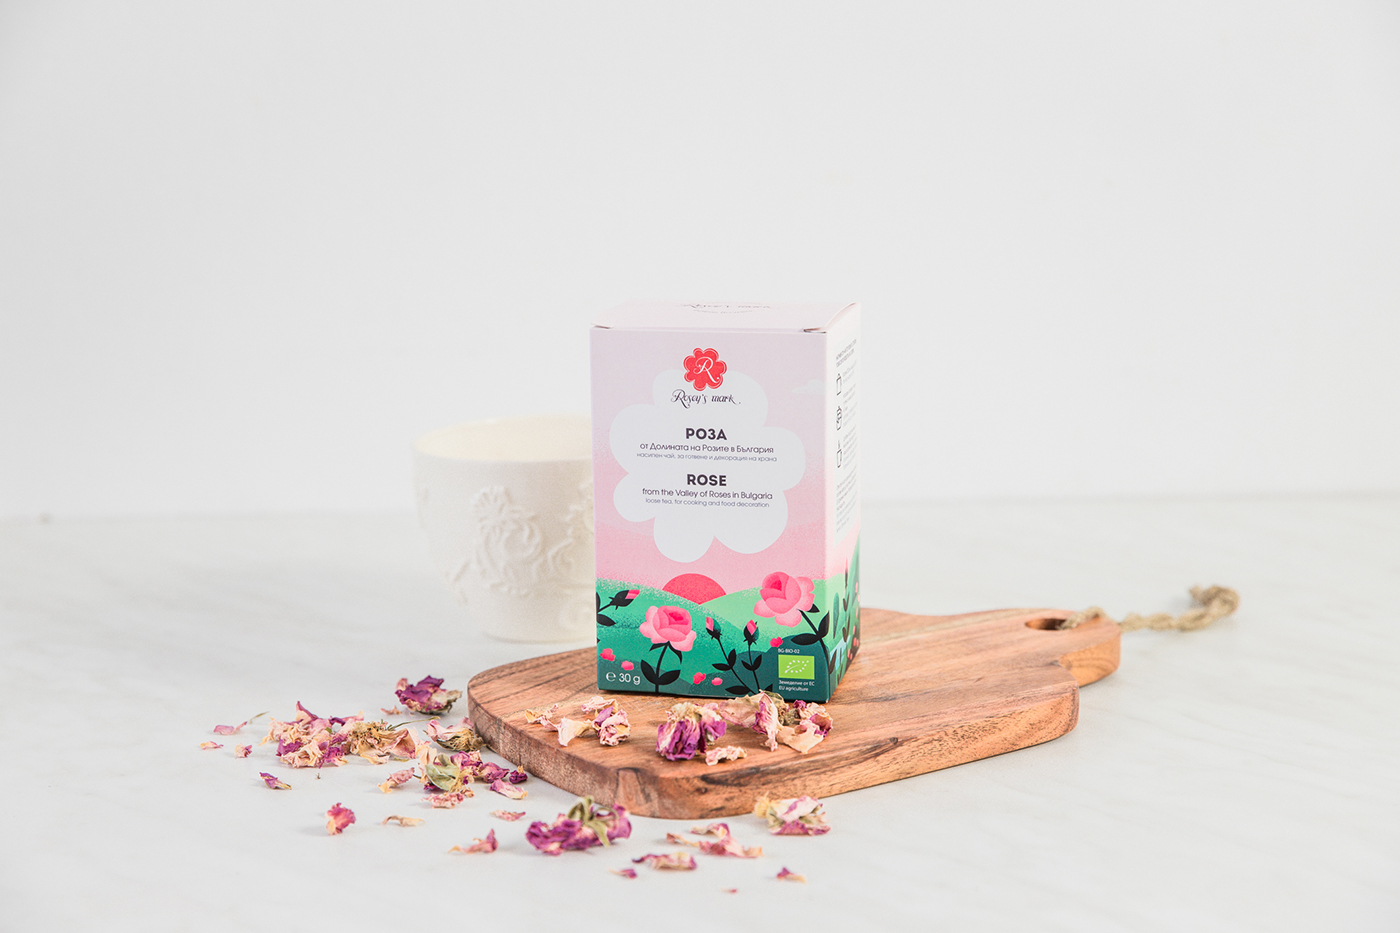 New look for the rose tea